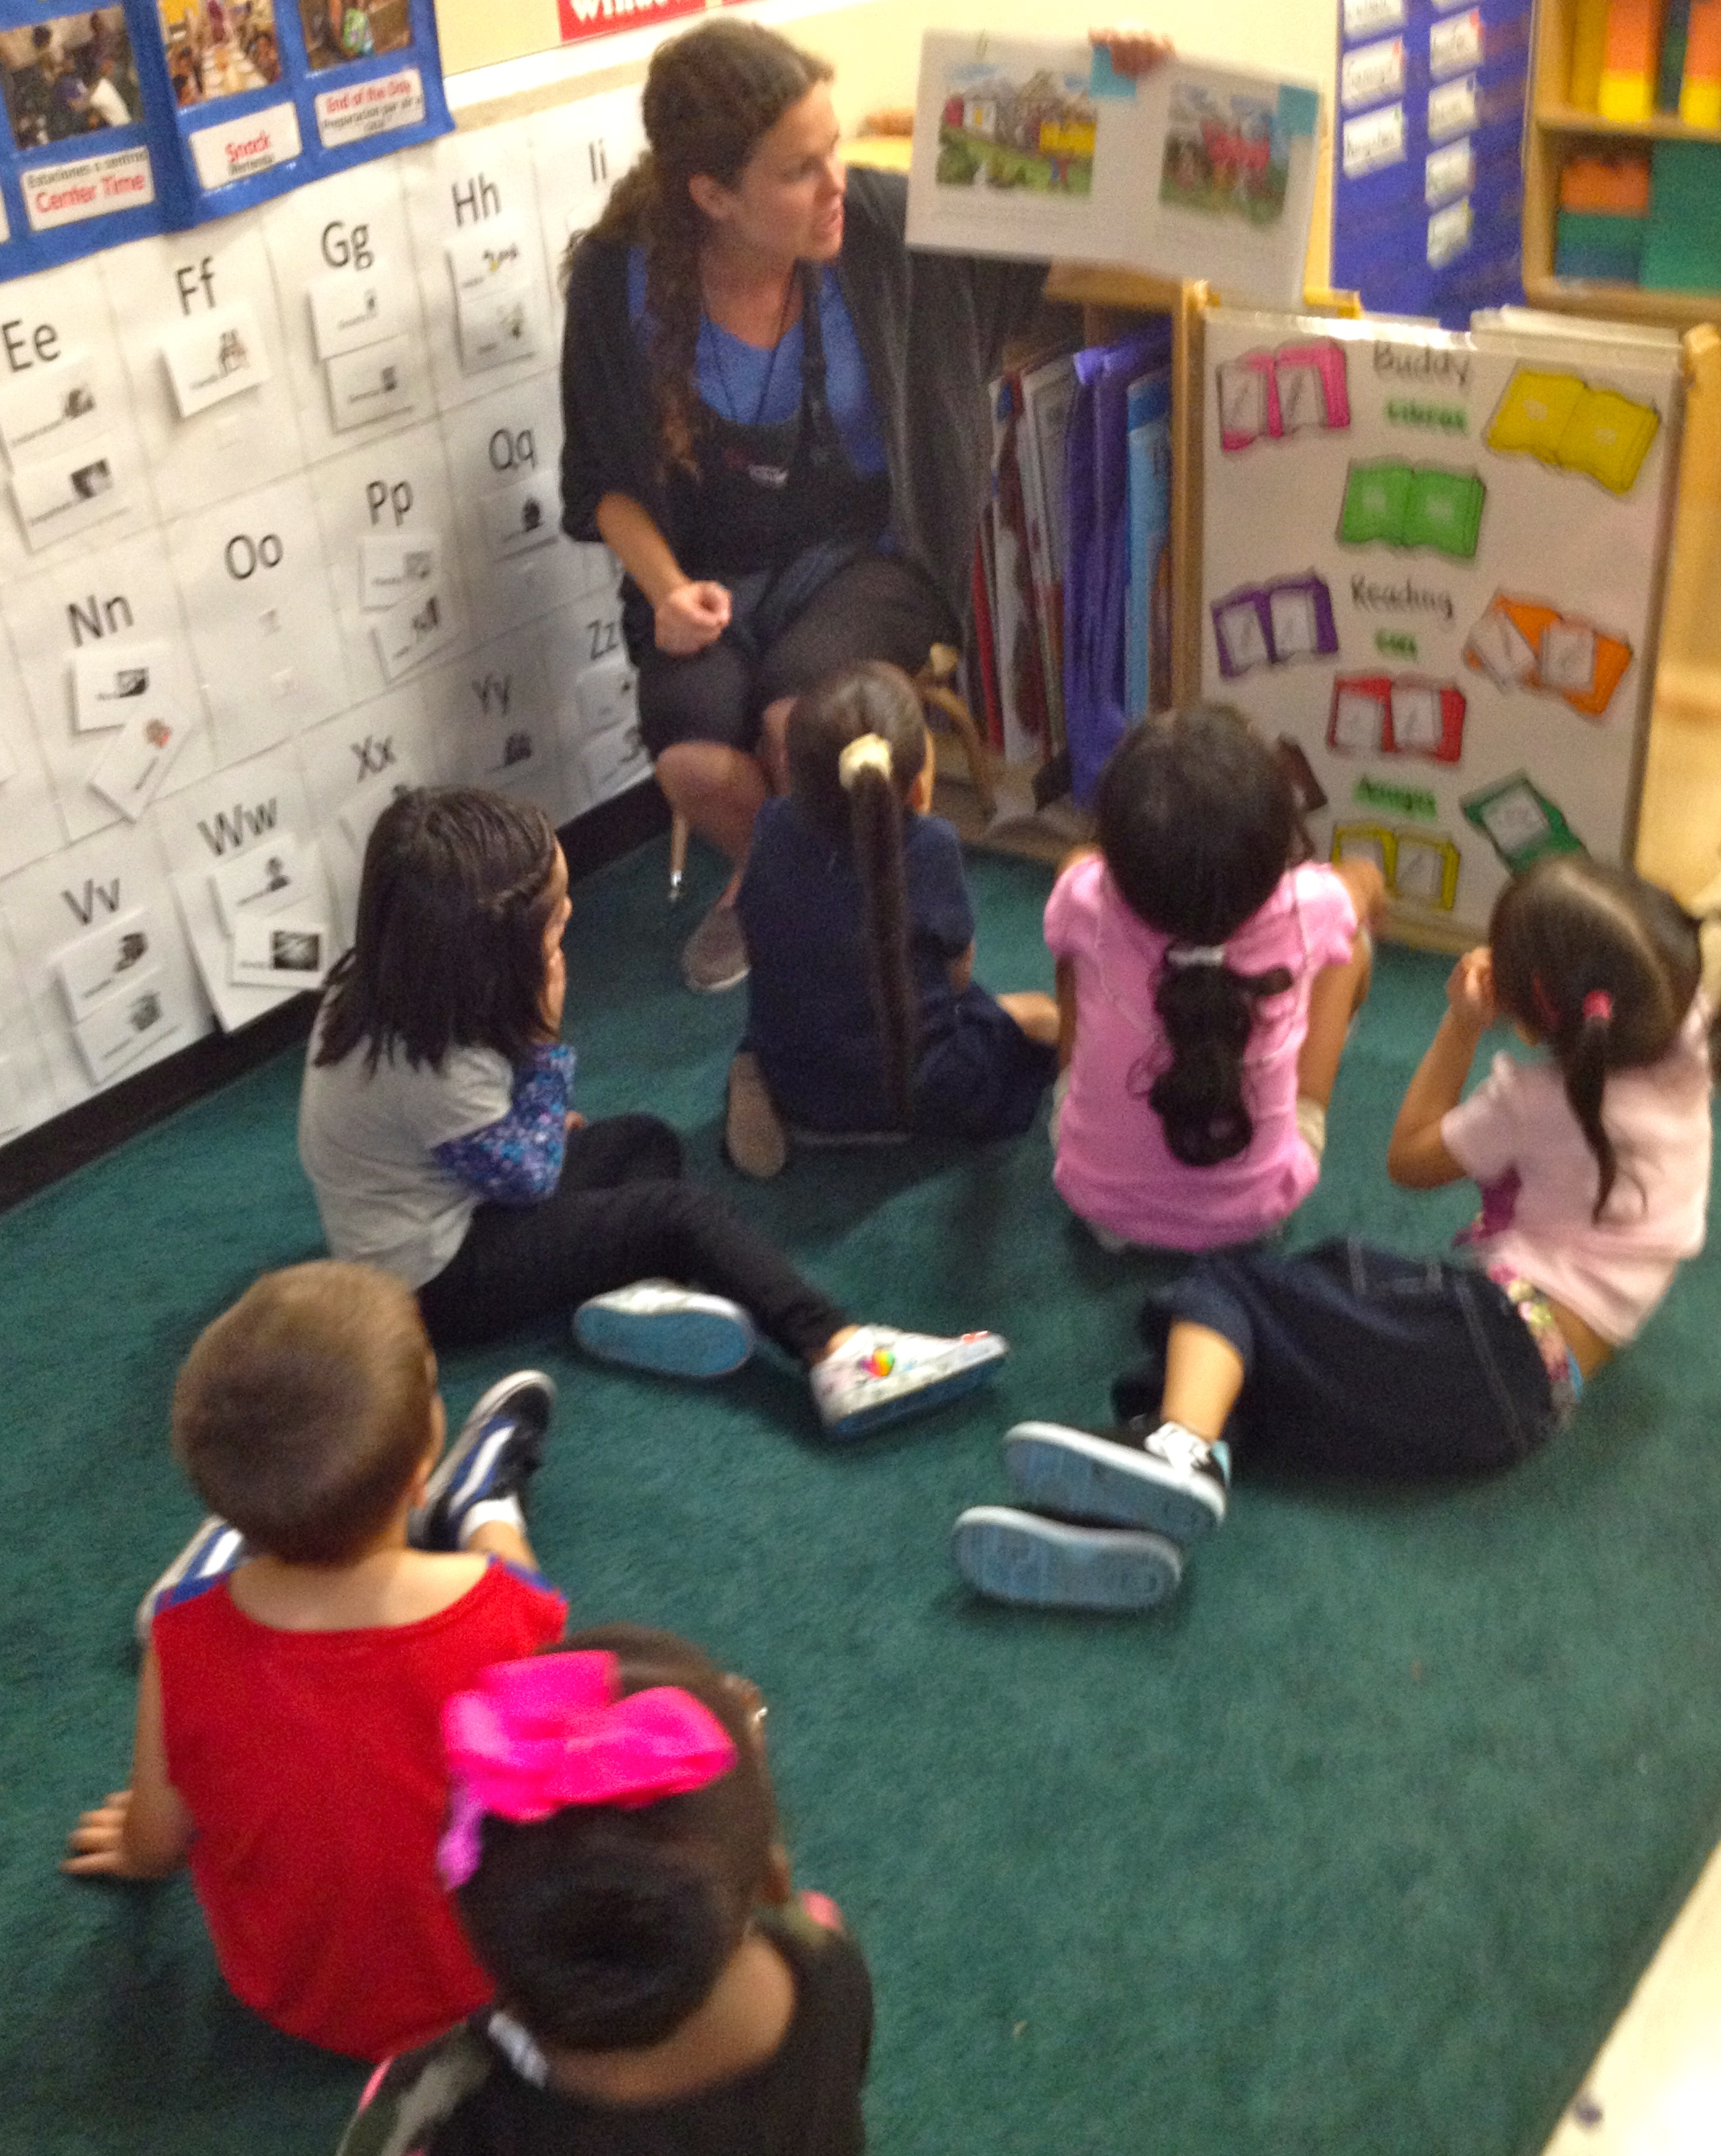 A young teacher with long wavy brown hair helping her class of elementary students read a book.